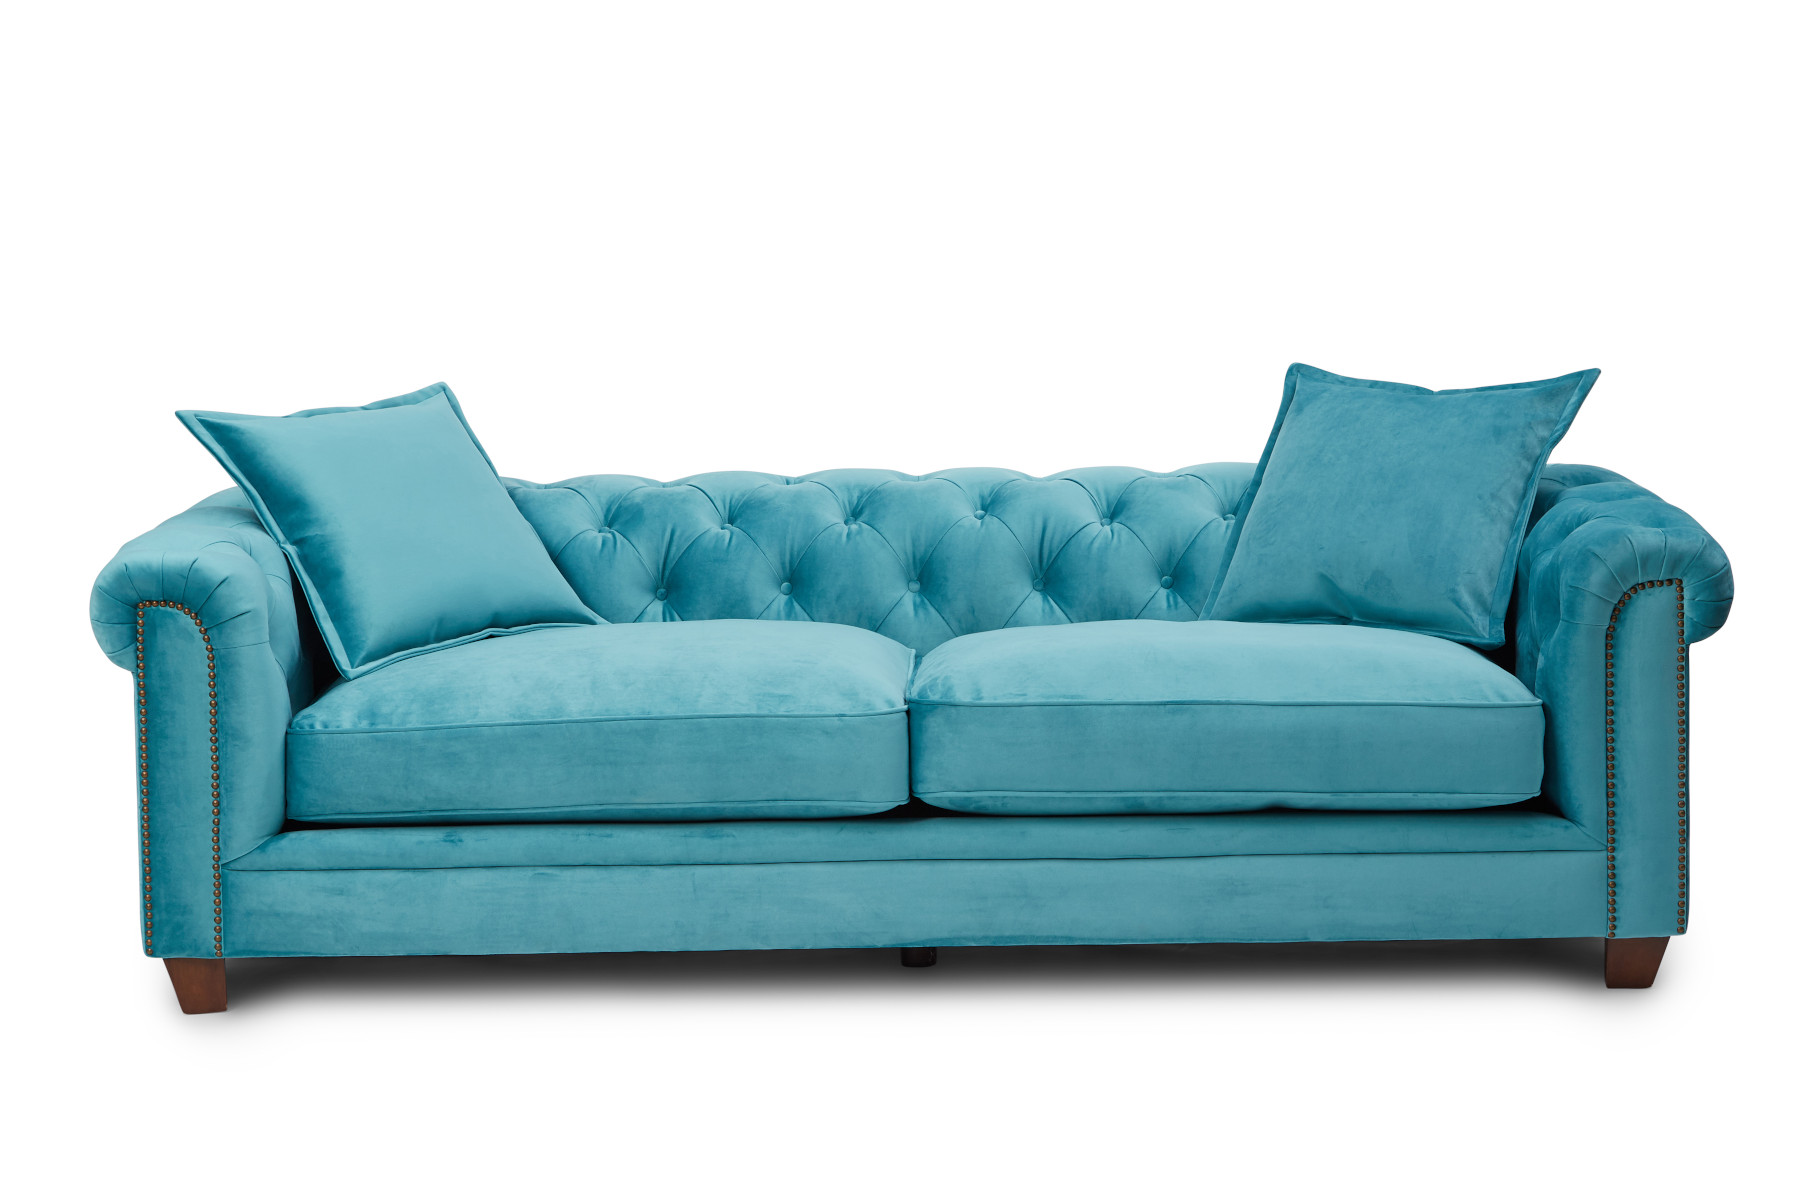 Kennedy 4 Seater Hermit Sofa - Teal